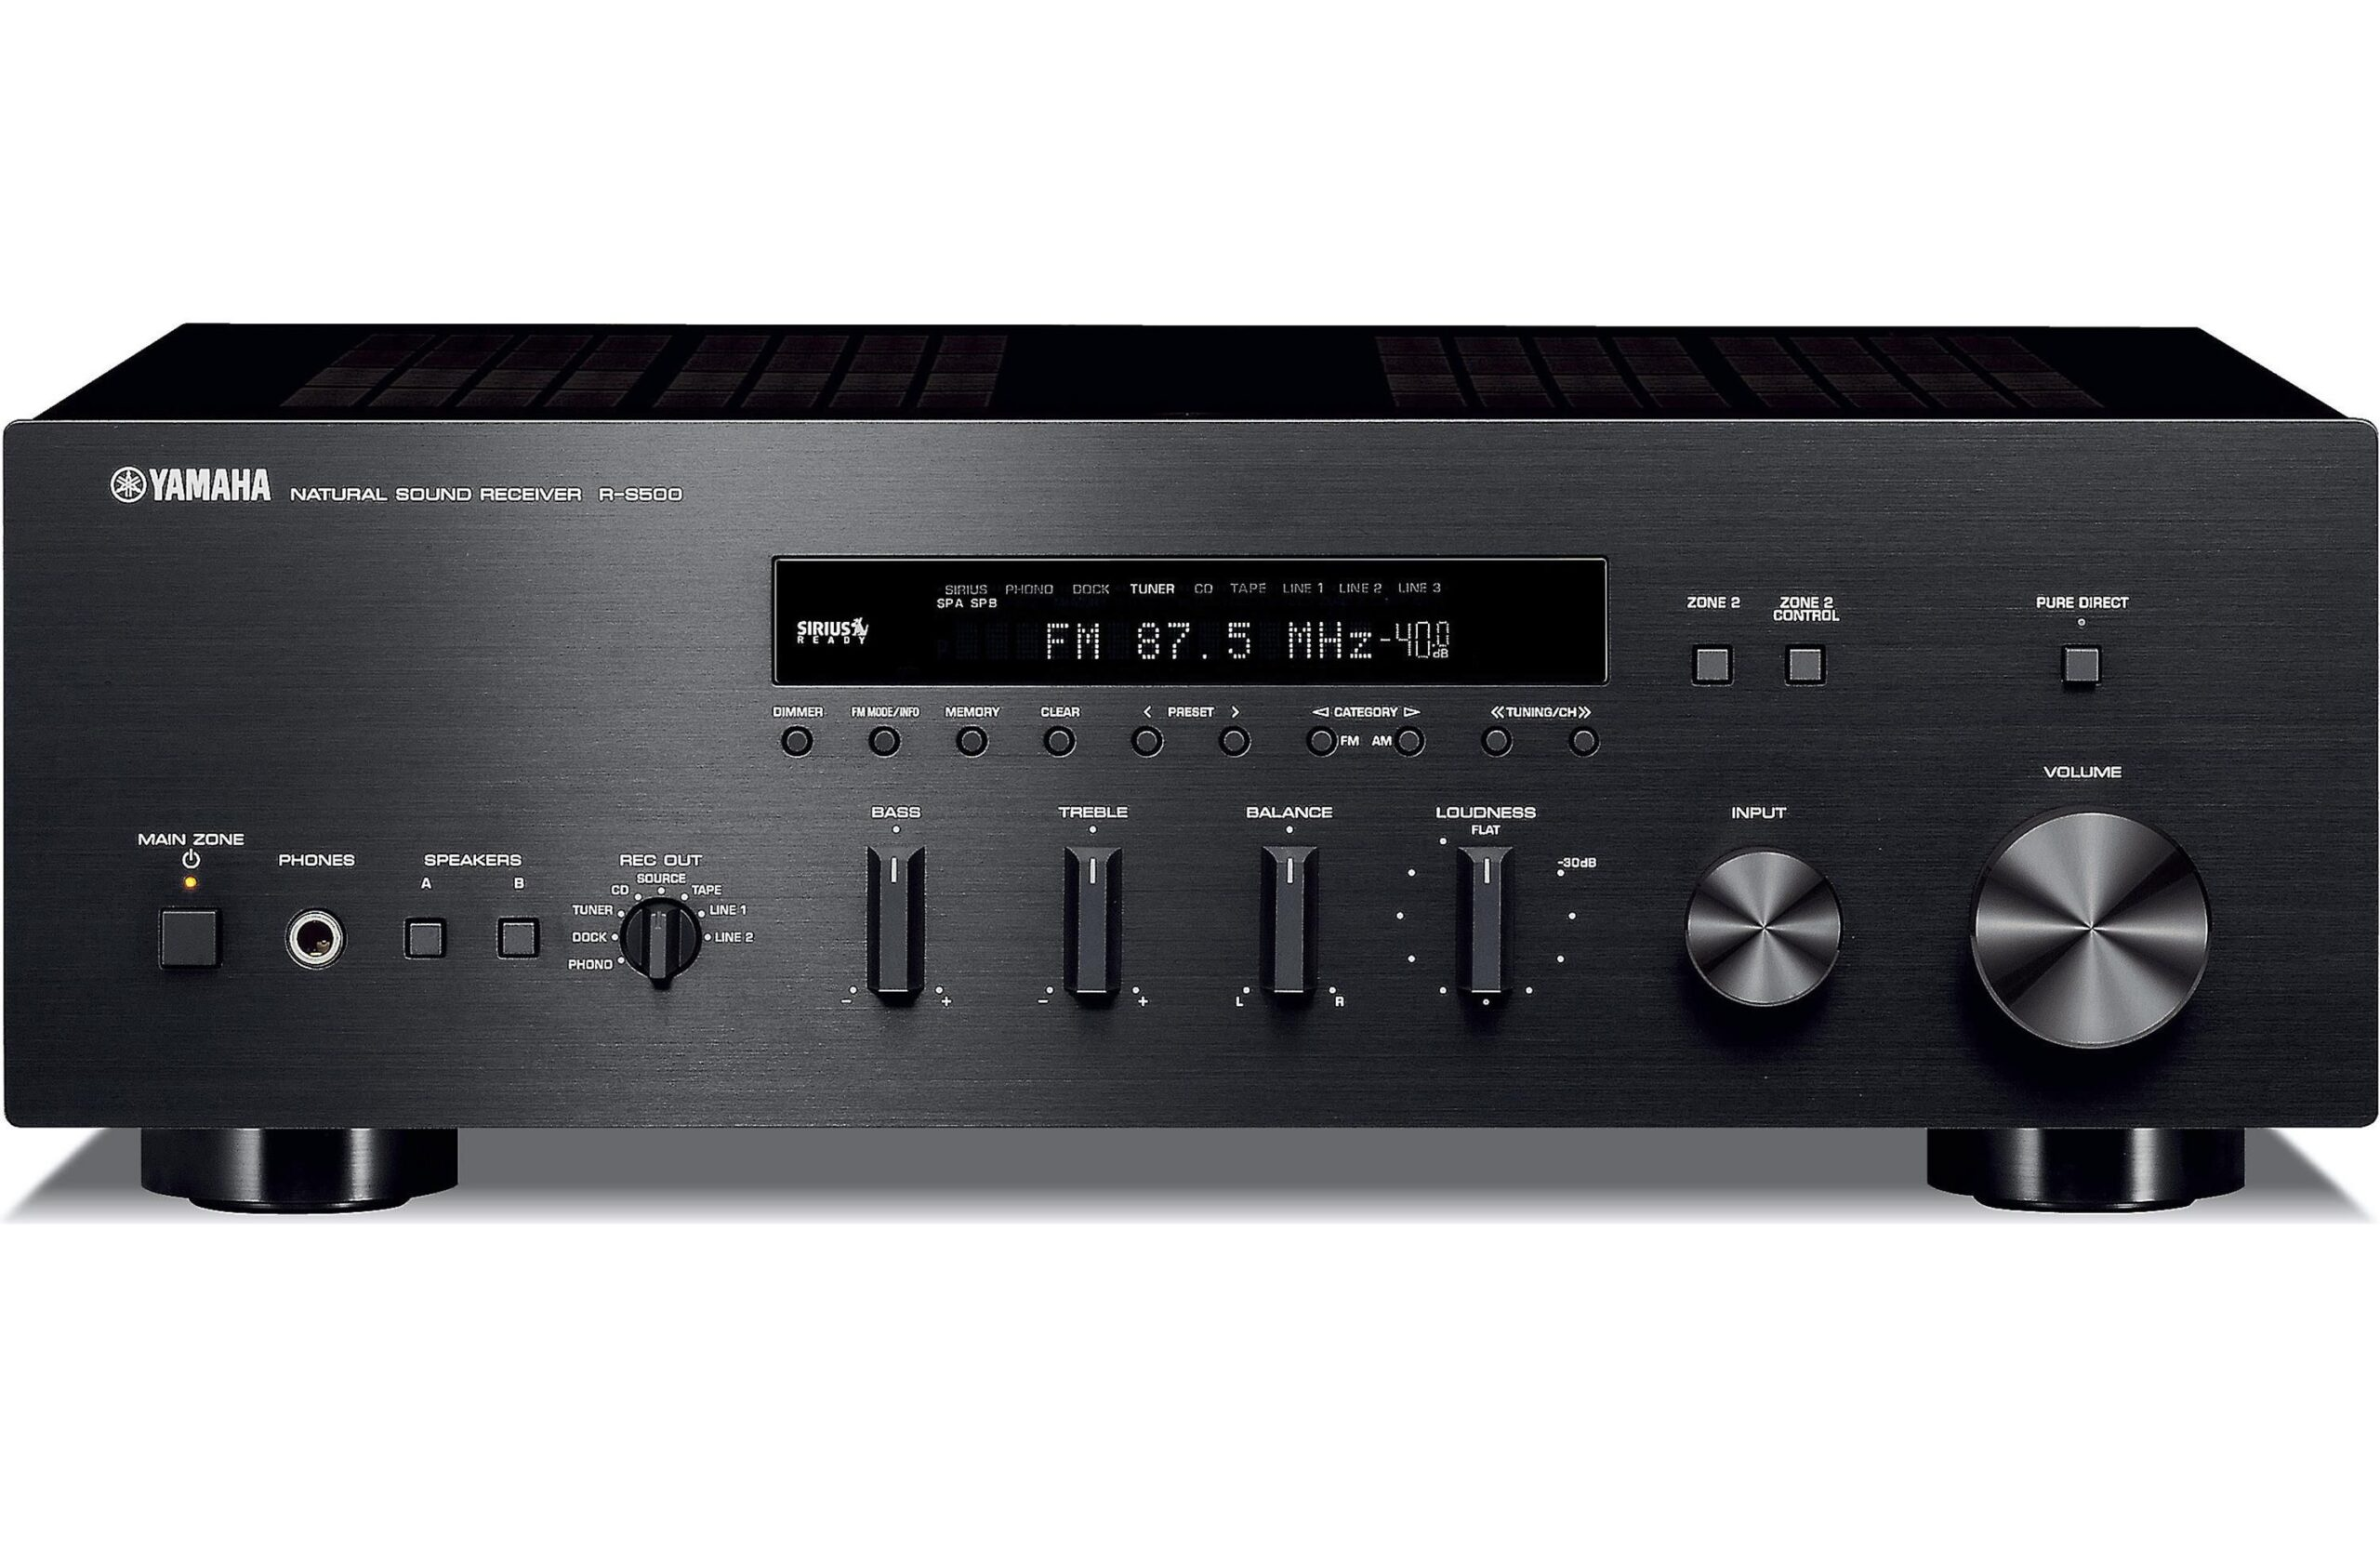 Yamaha-R-S700-receiver-review